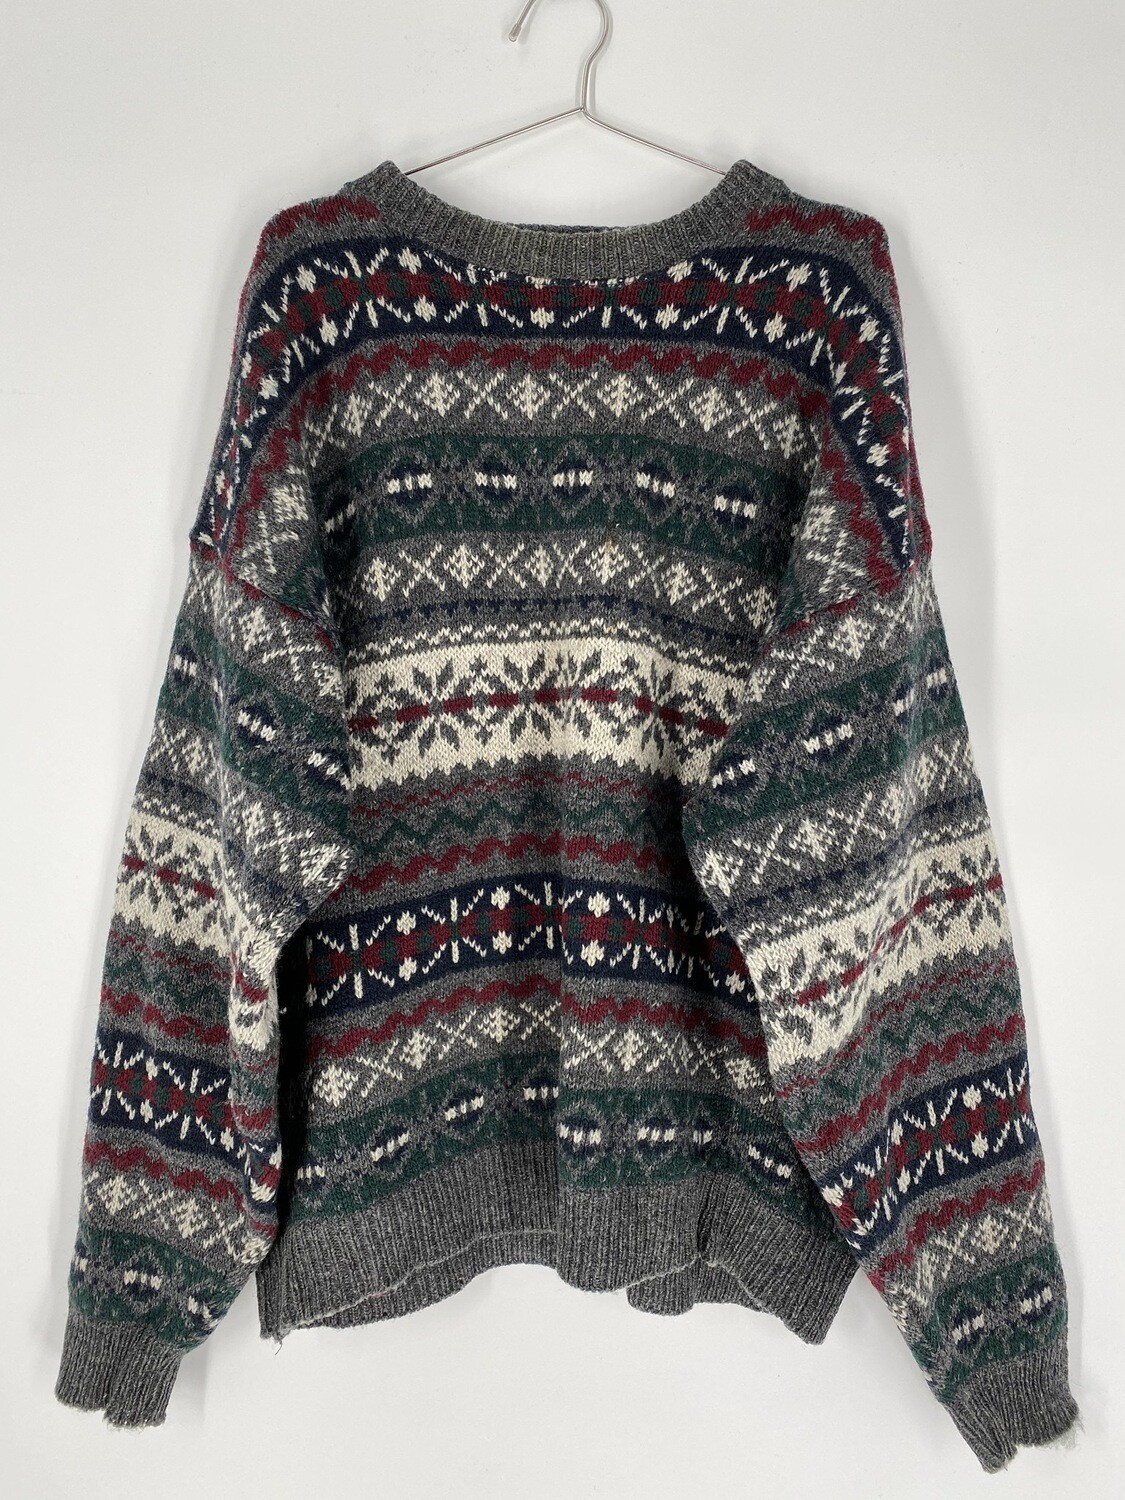 Woolrich Patterned Sweater Size L